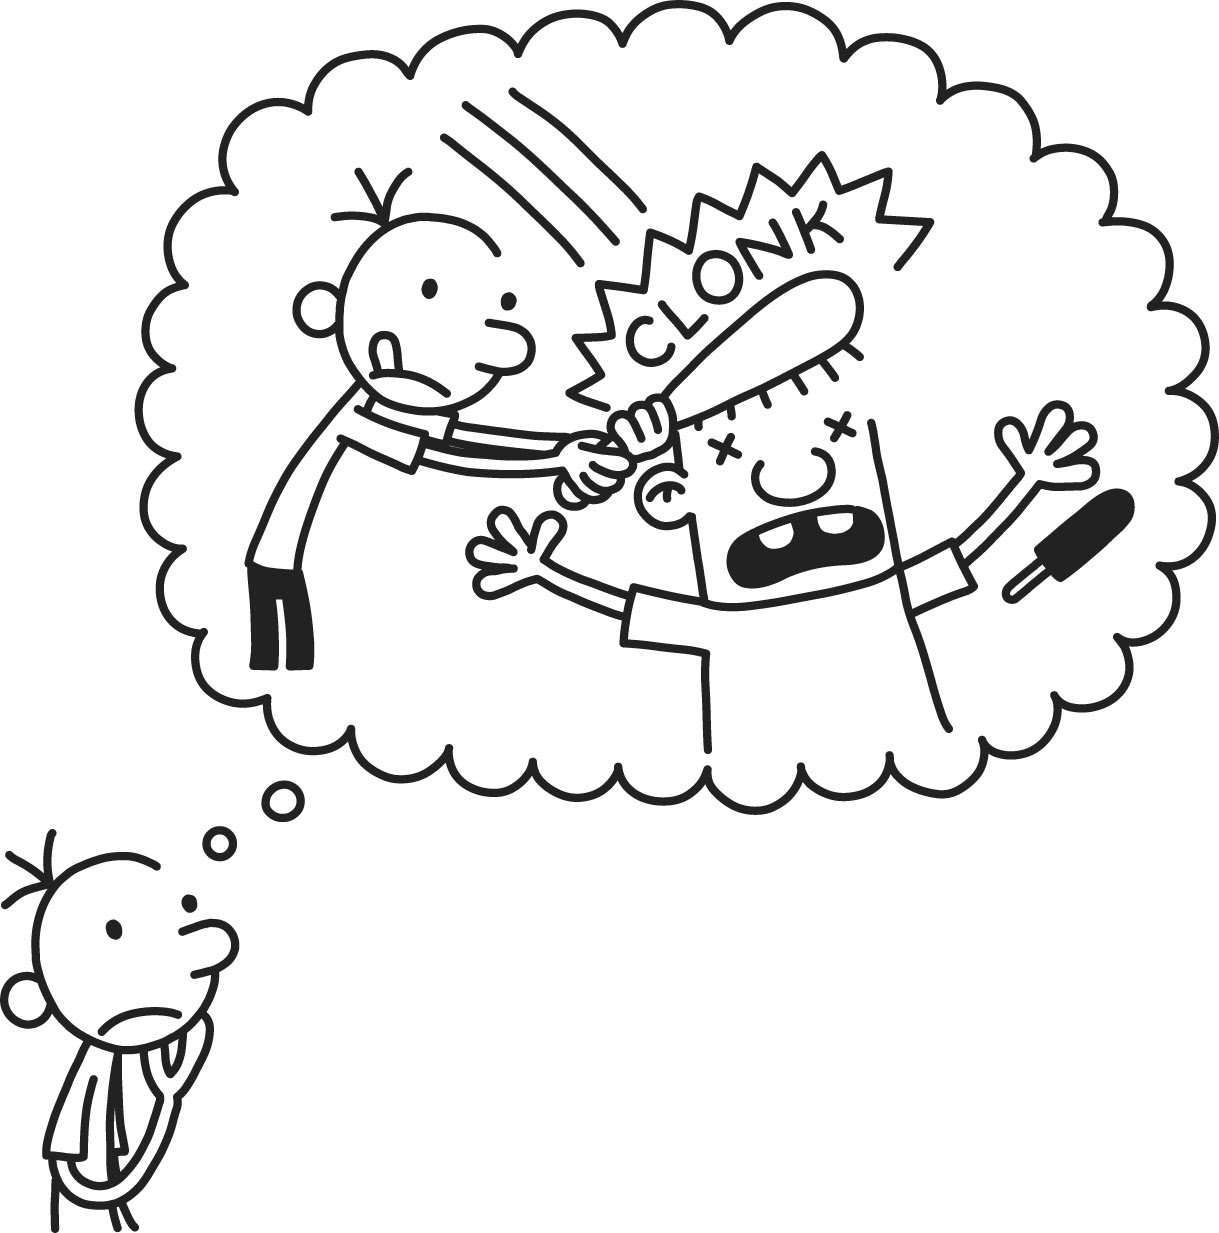 1219x1233 How Well Do You Know The Wimpy Kid Books Wimpy Kid Quiz